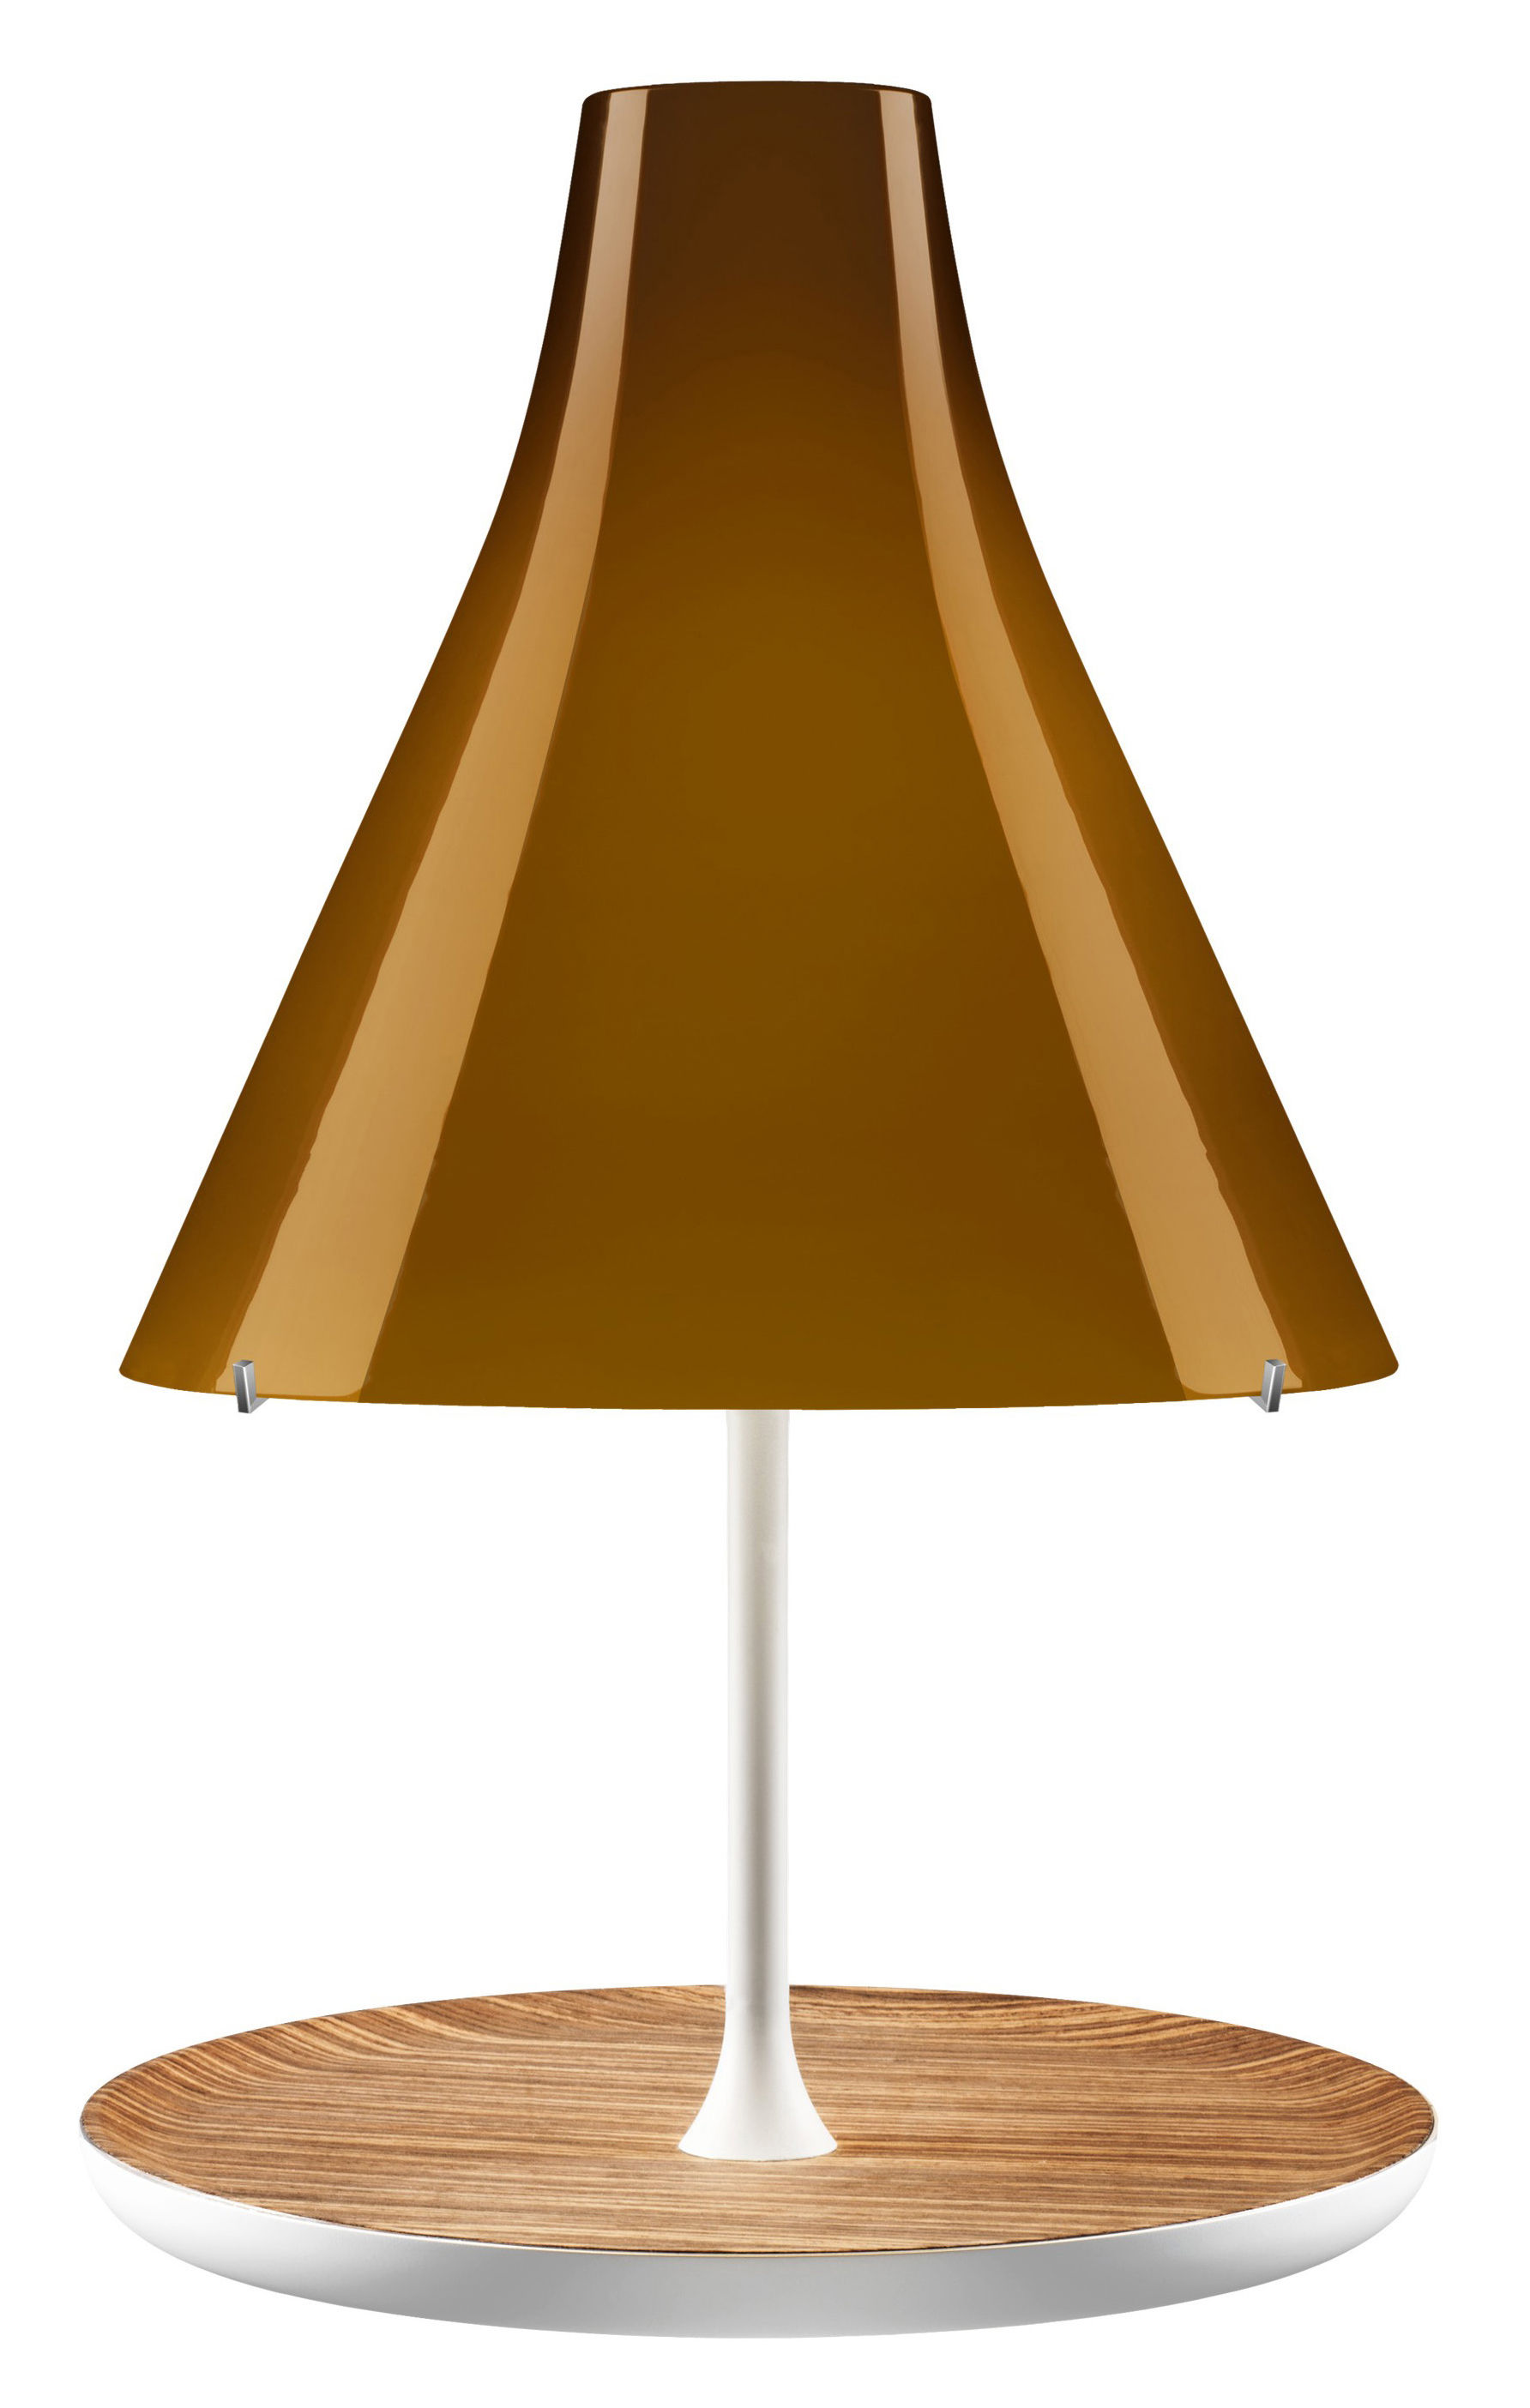 tosca table lamp wooden base amber lampshade wood base by foscarini. Black Bedroom Furniture Sets. Home Design Ideas